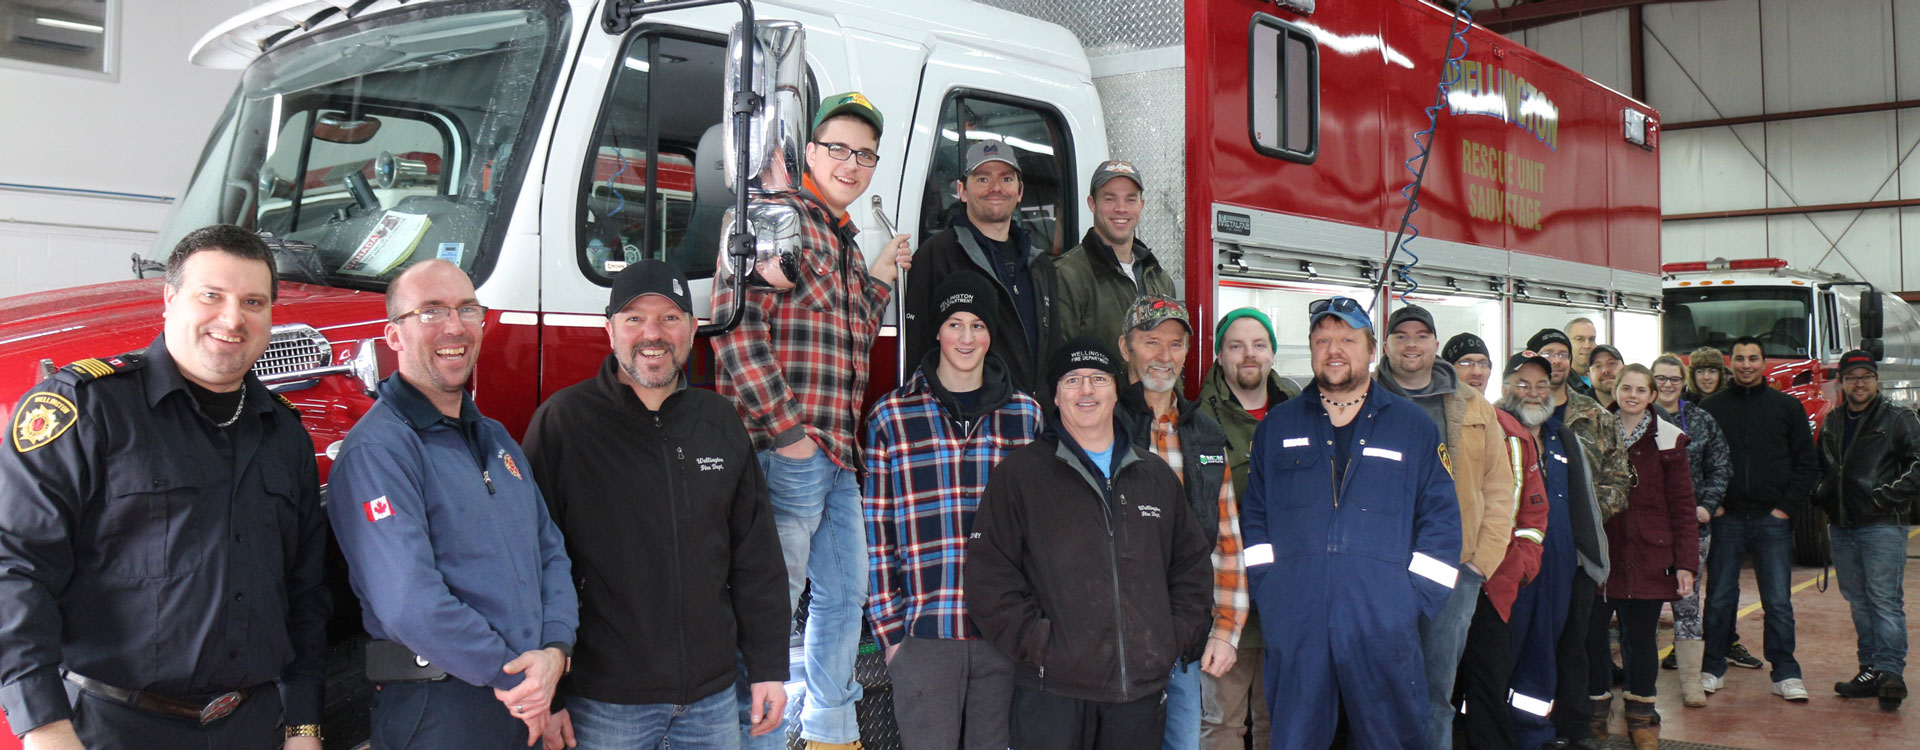 Wellington Firefighters with new rescue truck